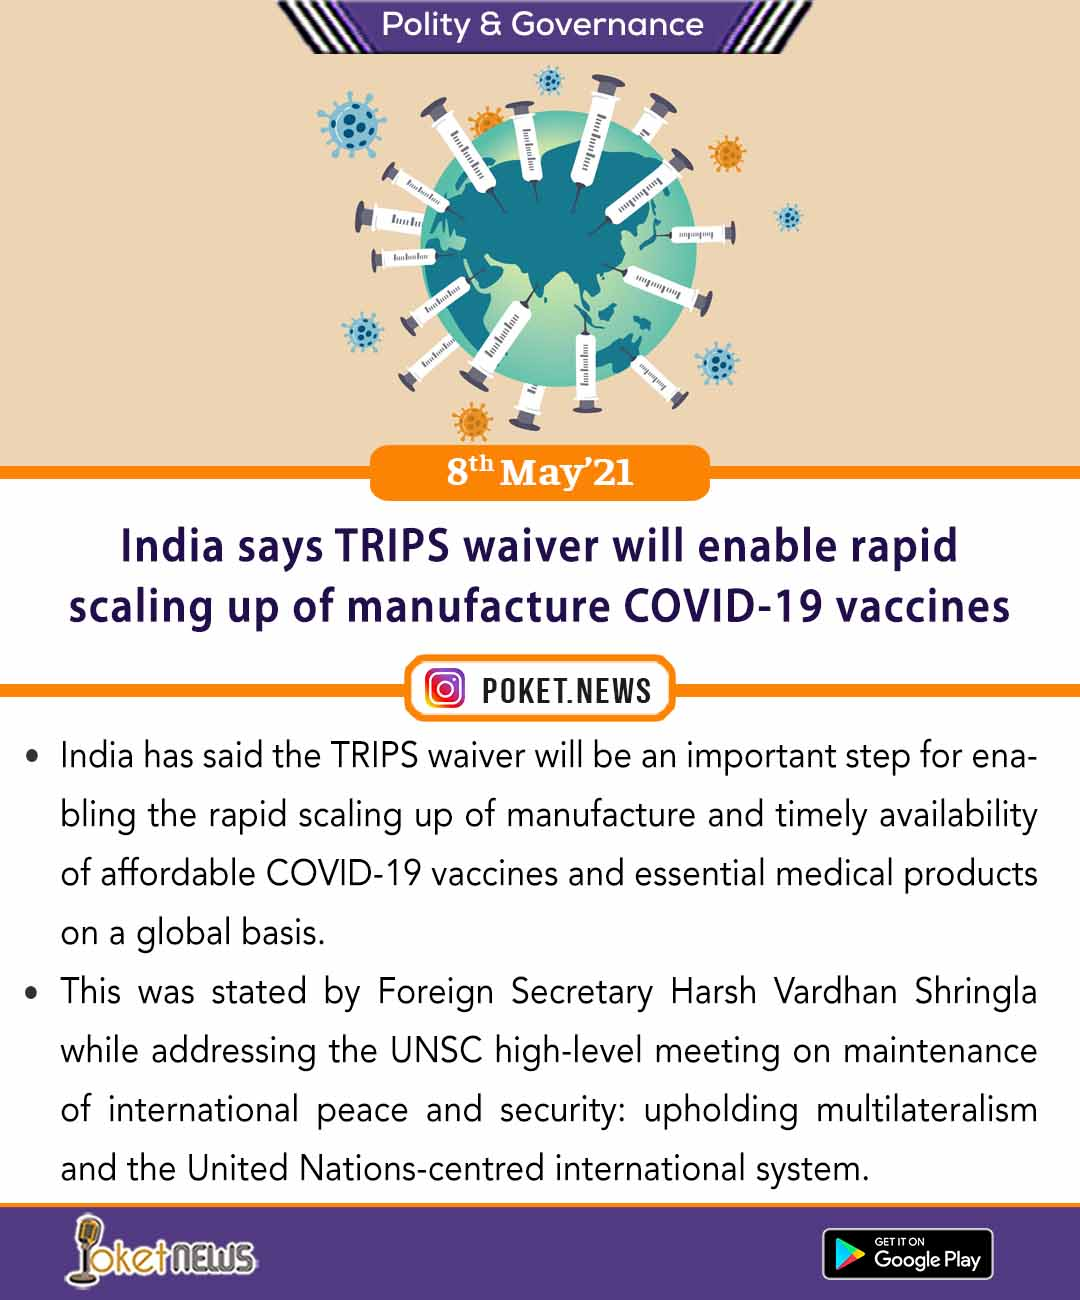 India says TRIPS waiver will enable rapid scaling up of manufacture COVID-19 vaccines